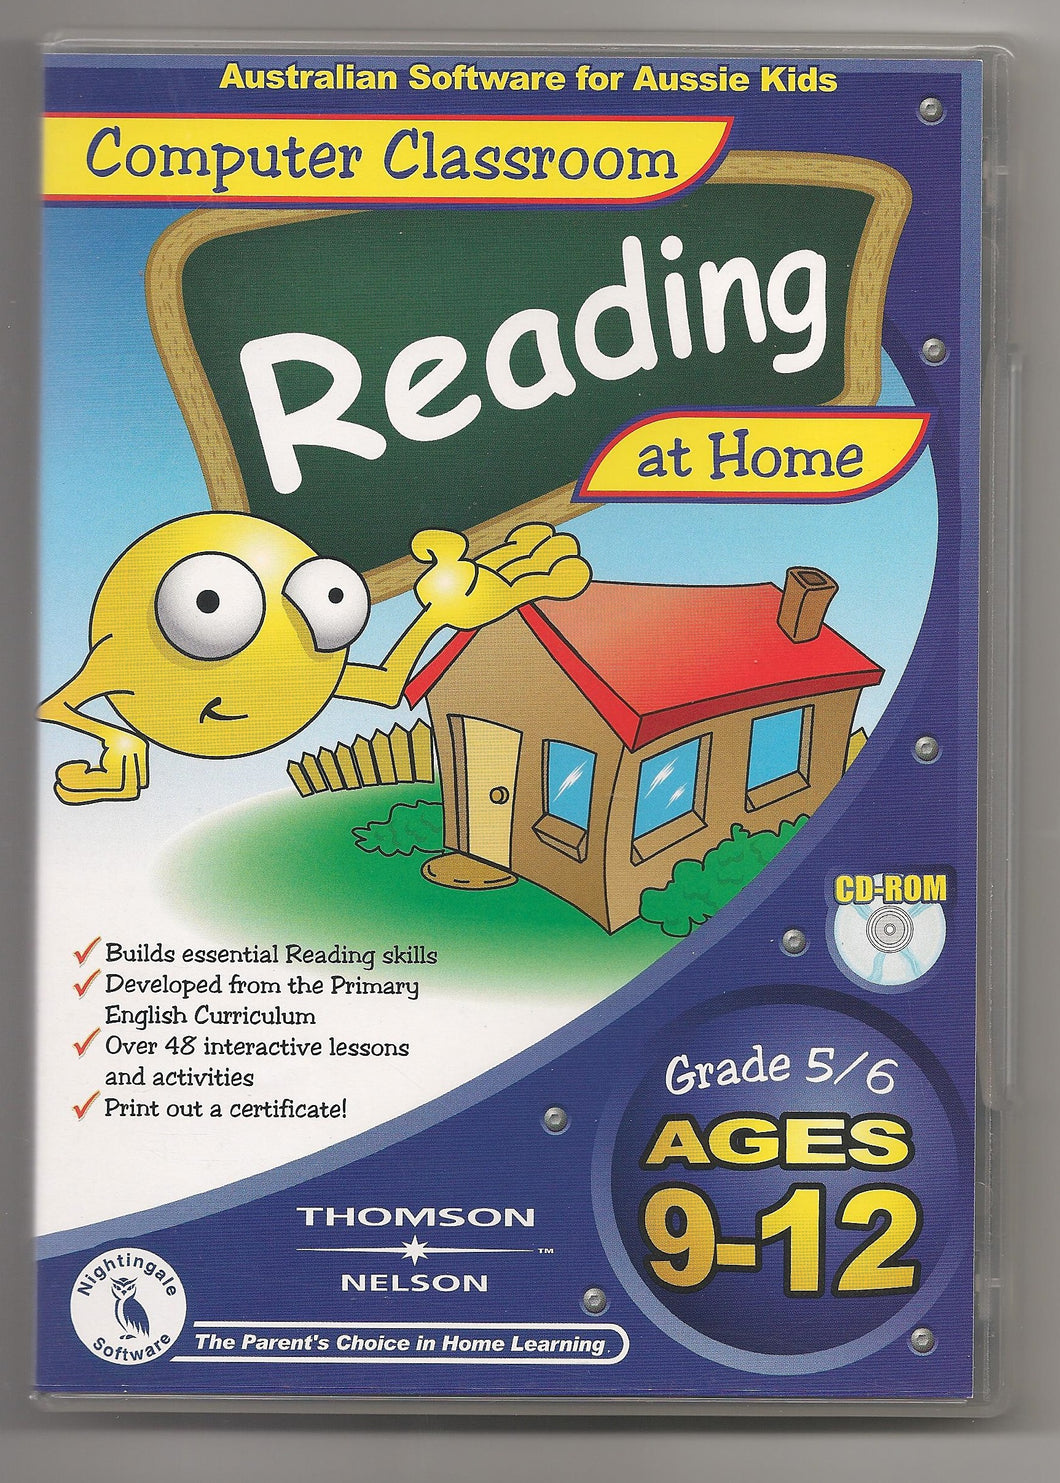 Computer Classroom Reading at Home v1 ages 9 to 12 cd-rom version